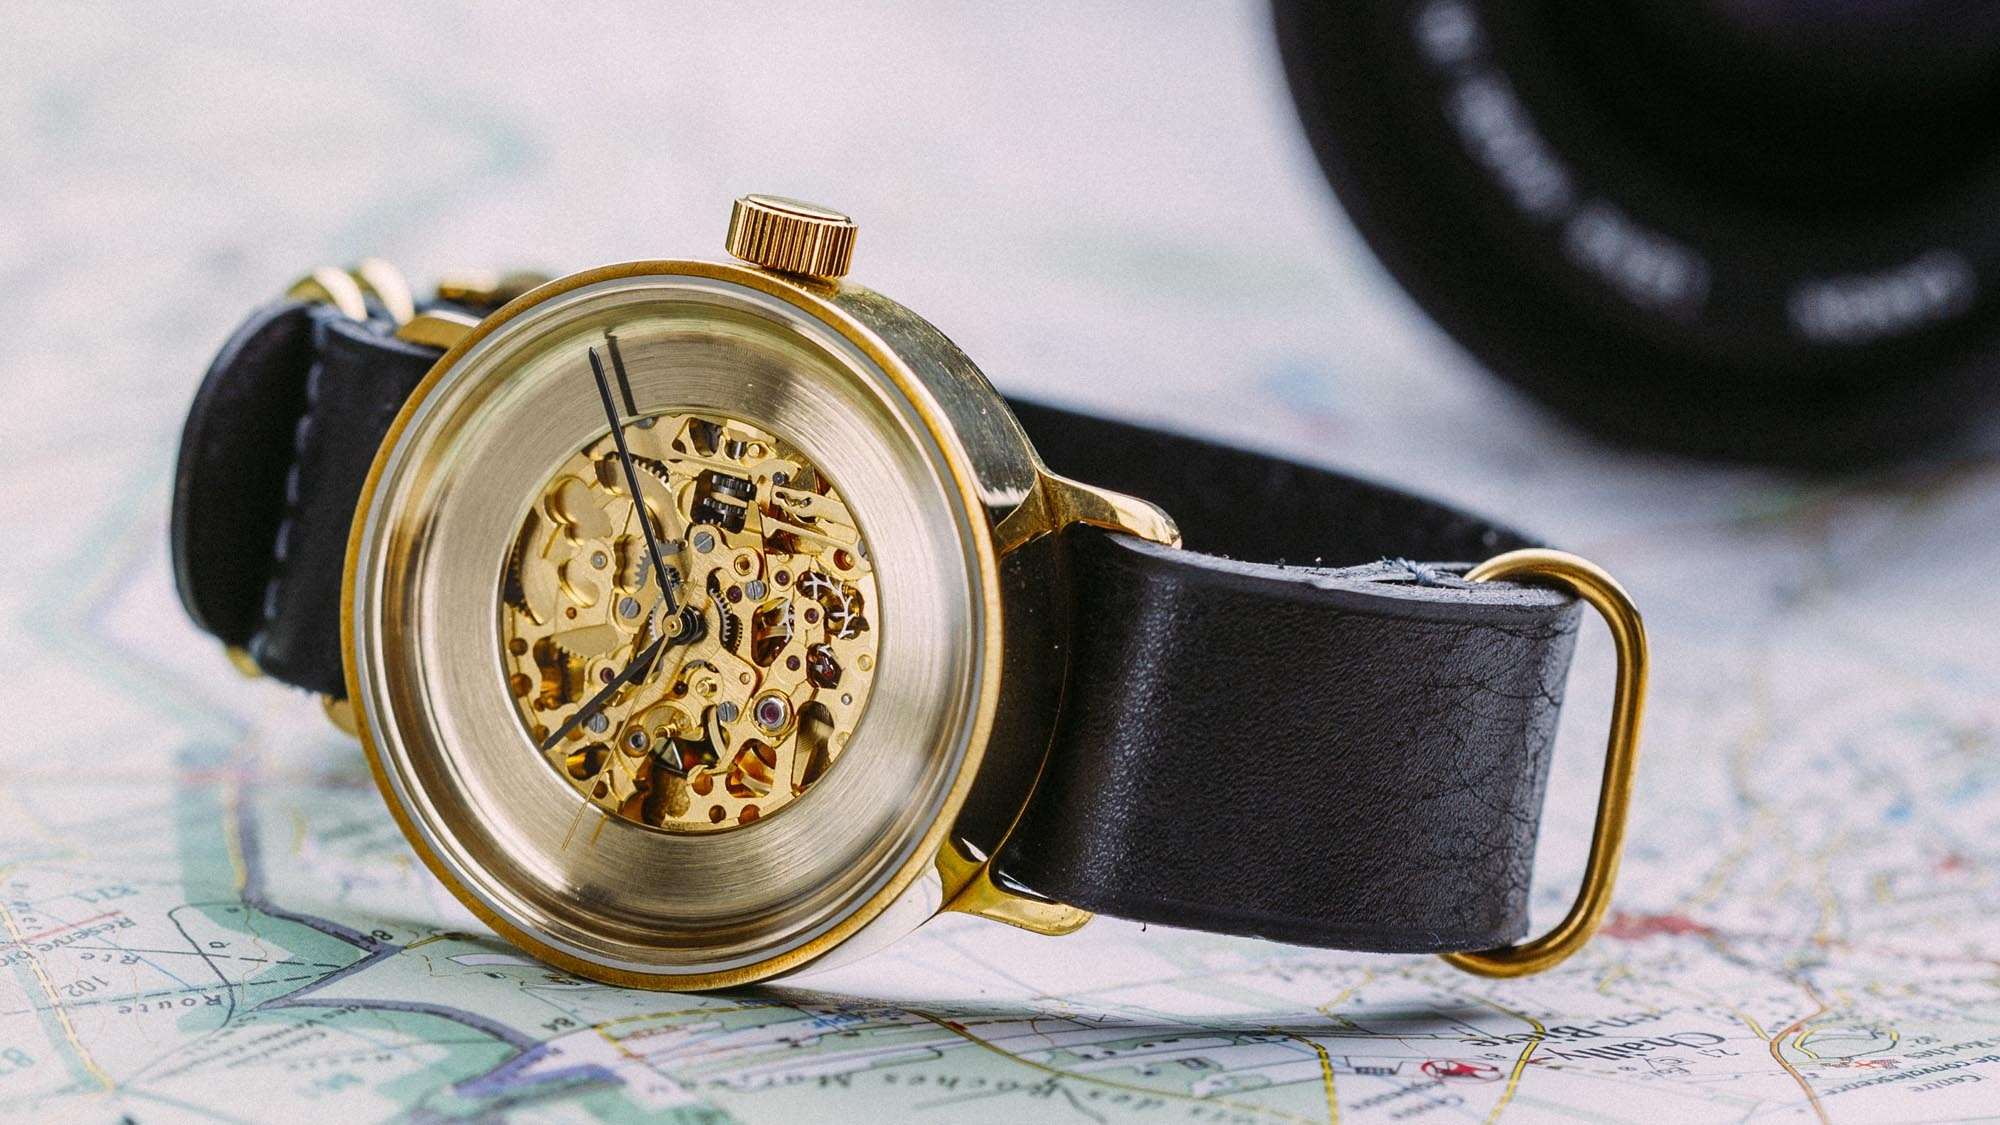 Watch with strap